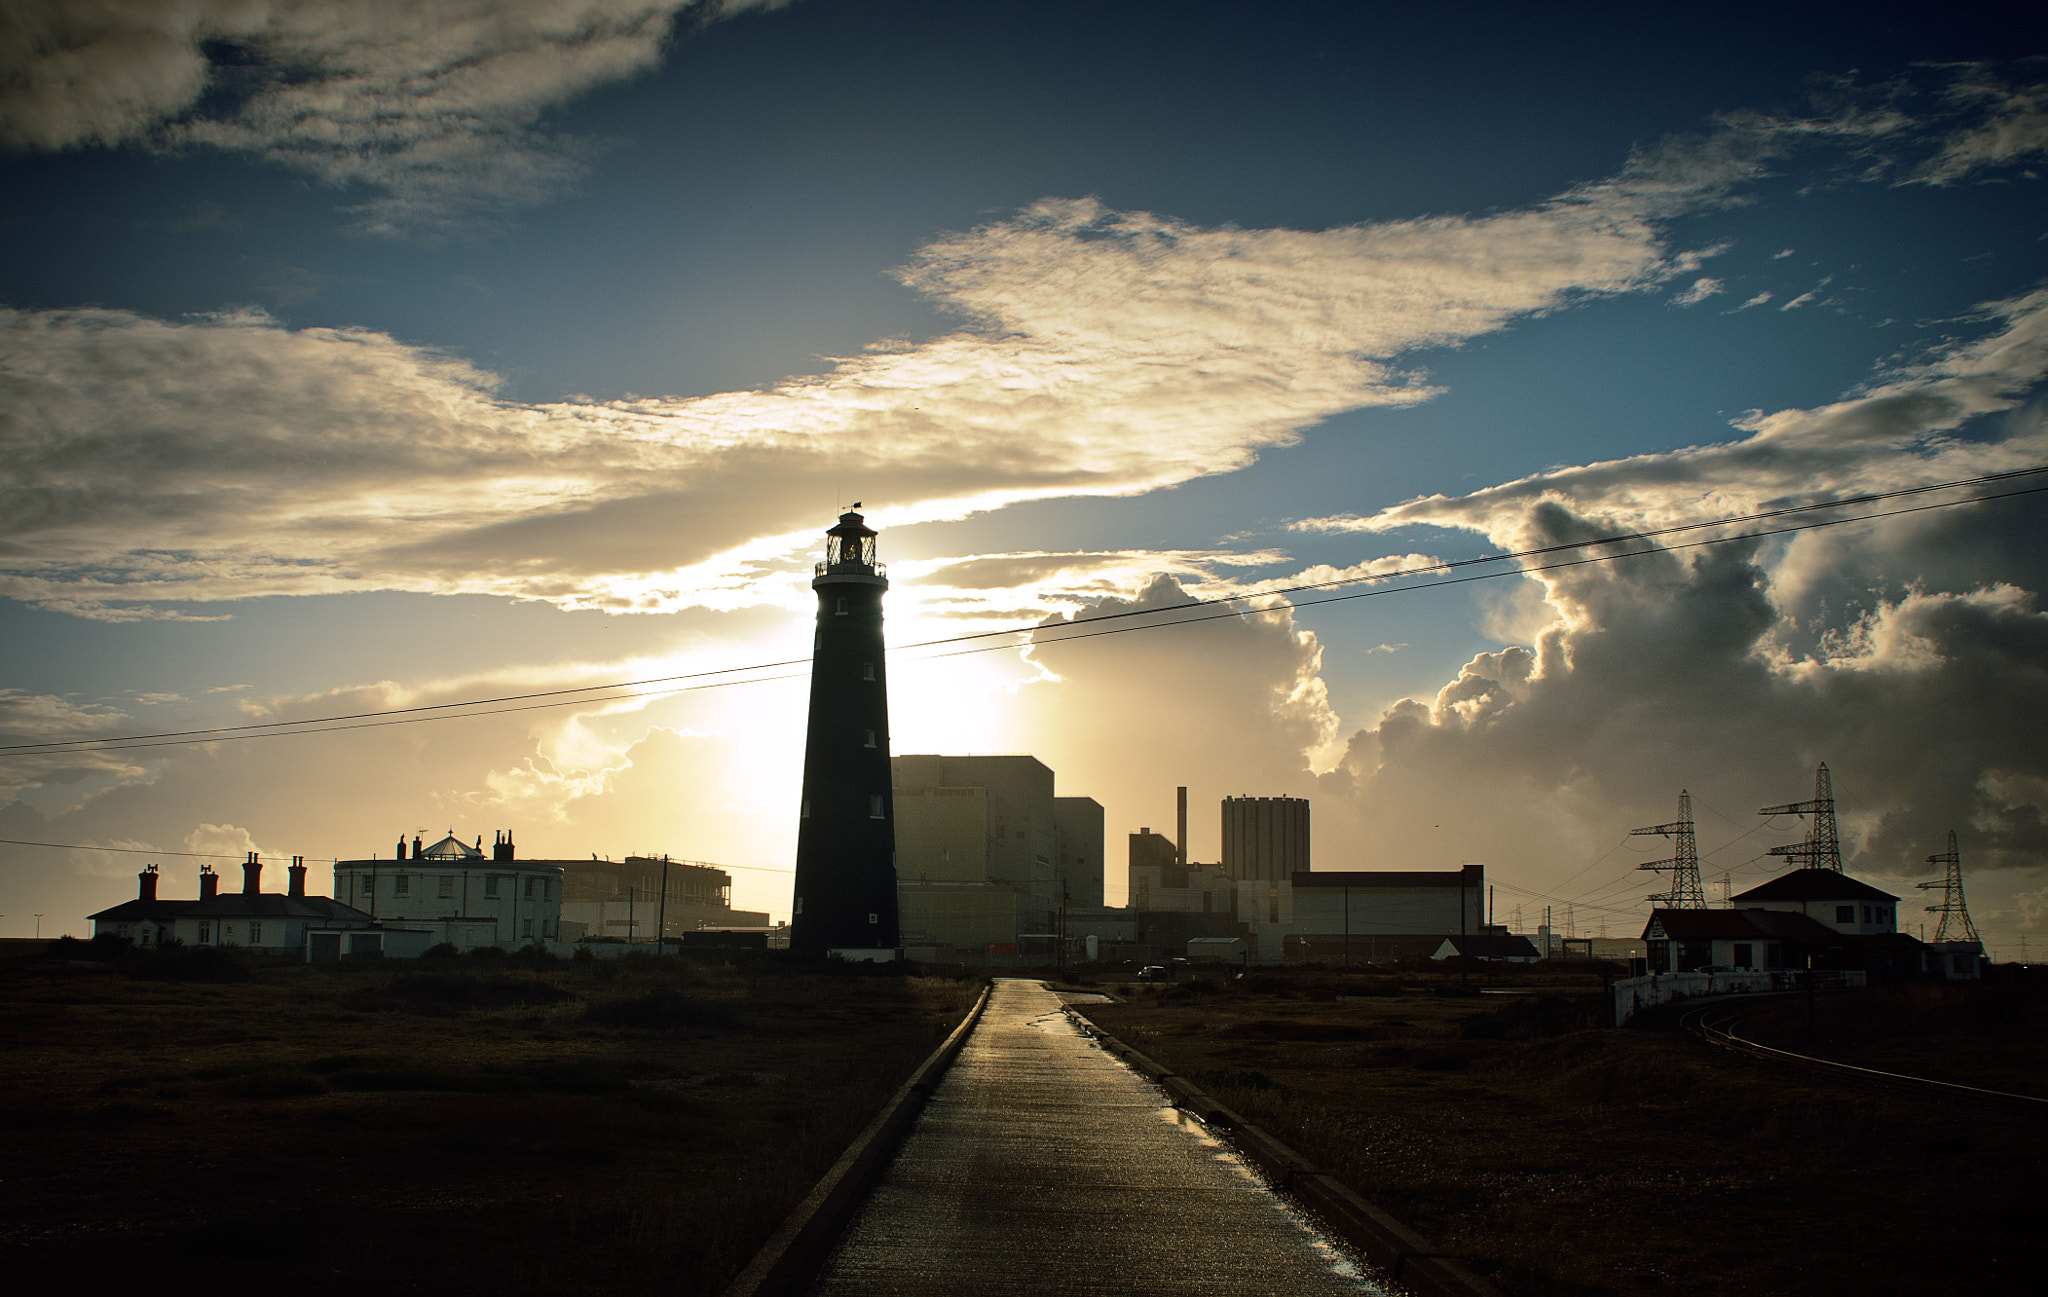 Photograph Dungeness by Jody Lawrence on 500px